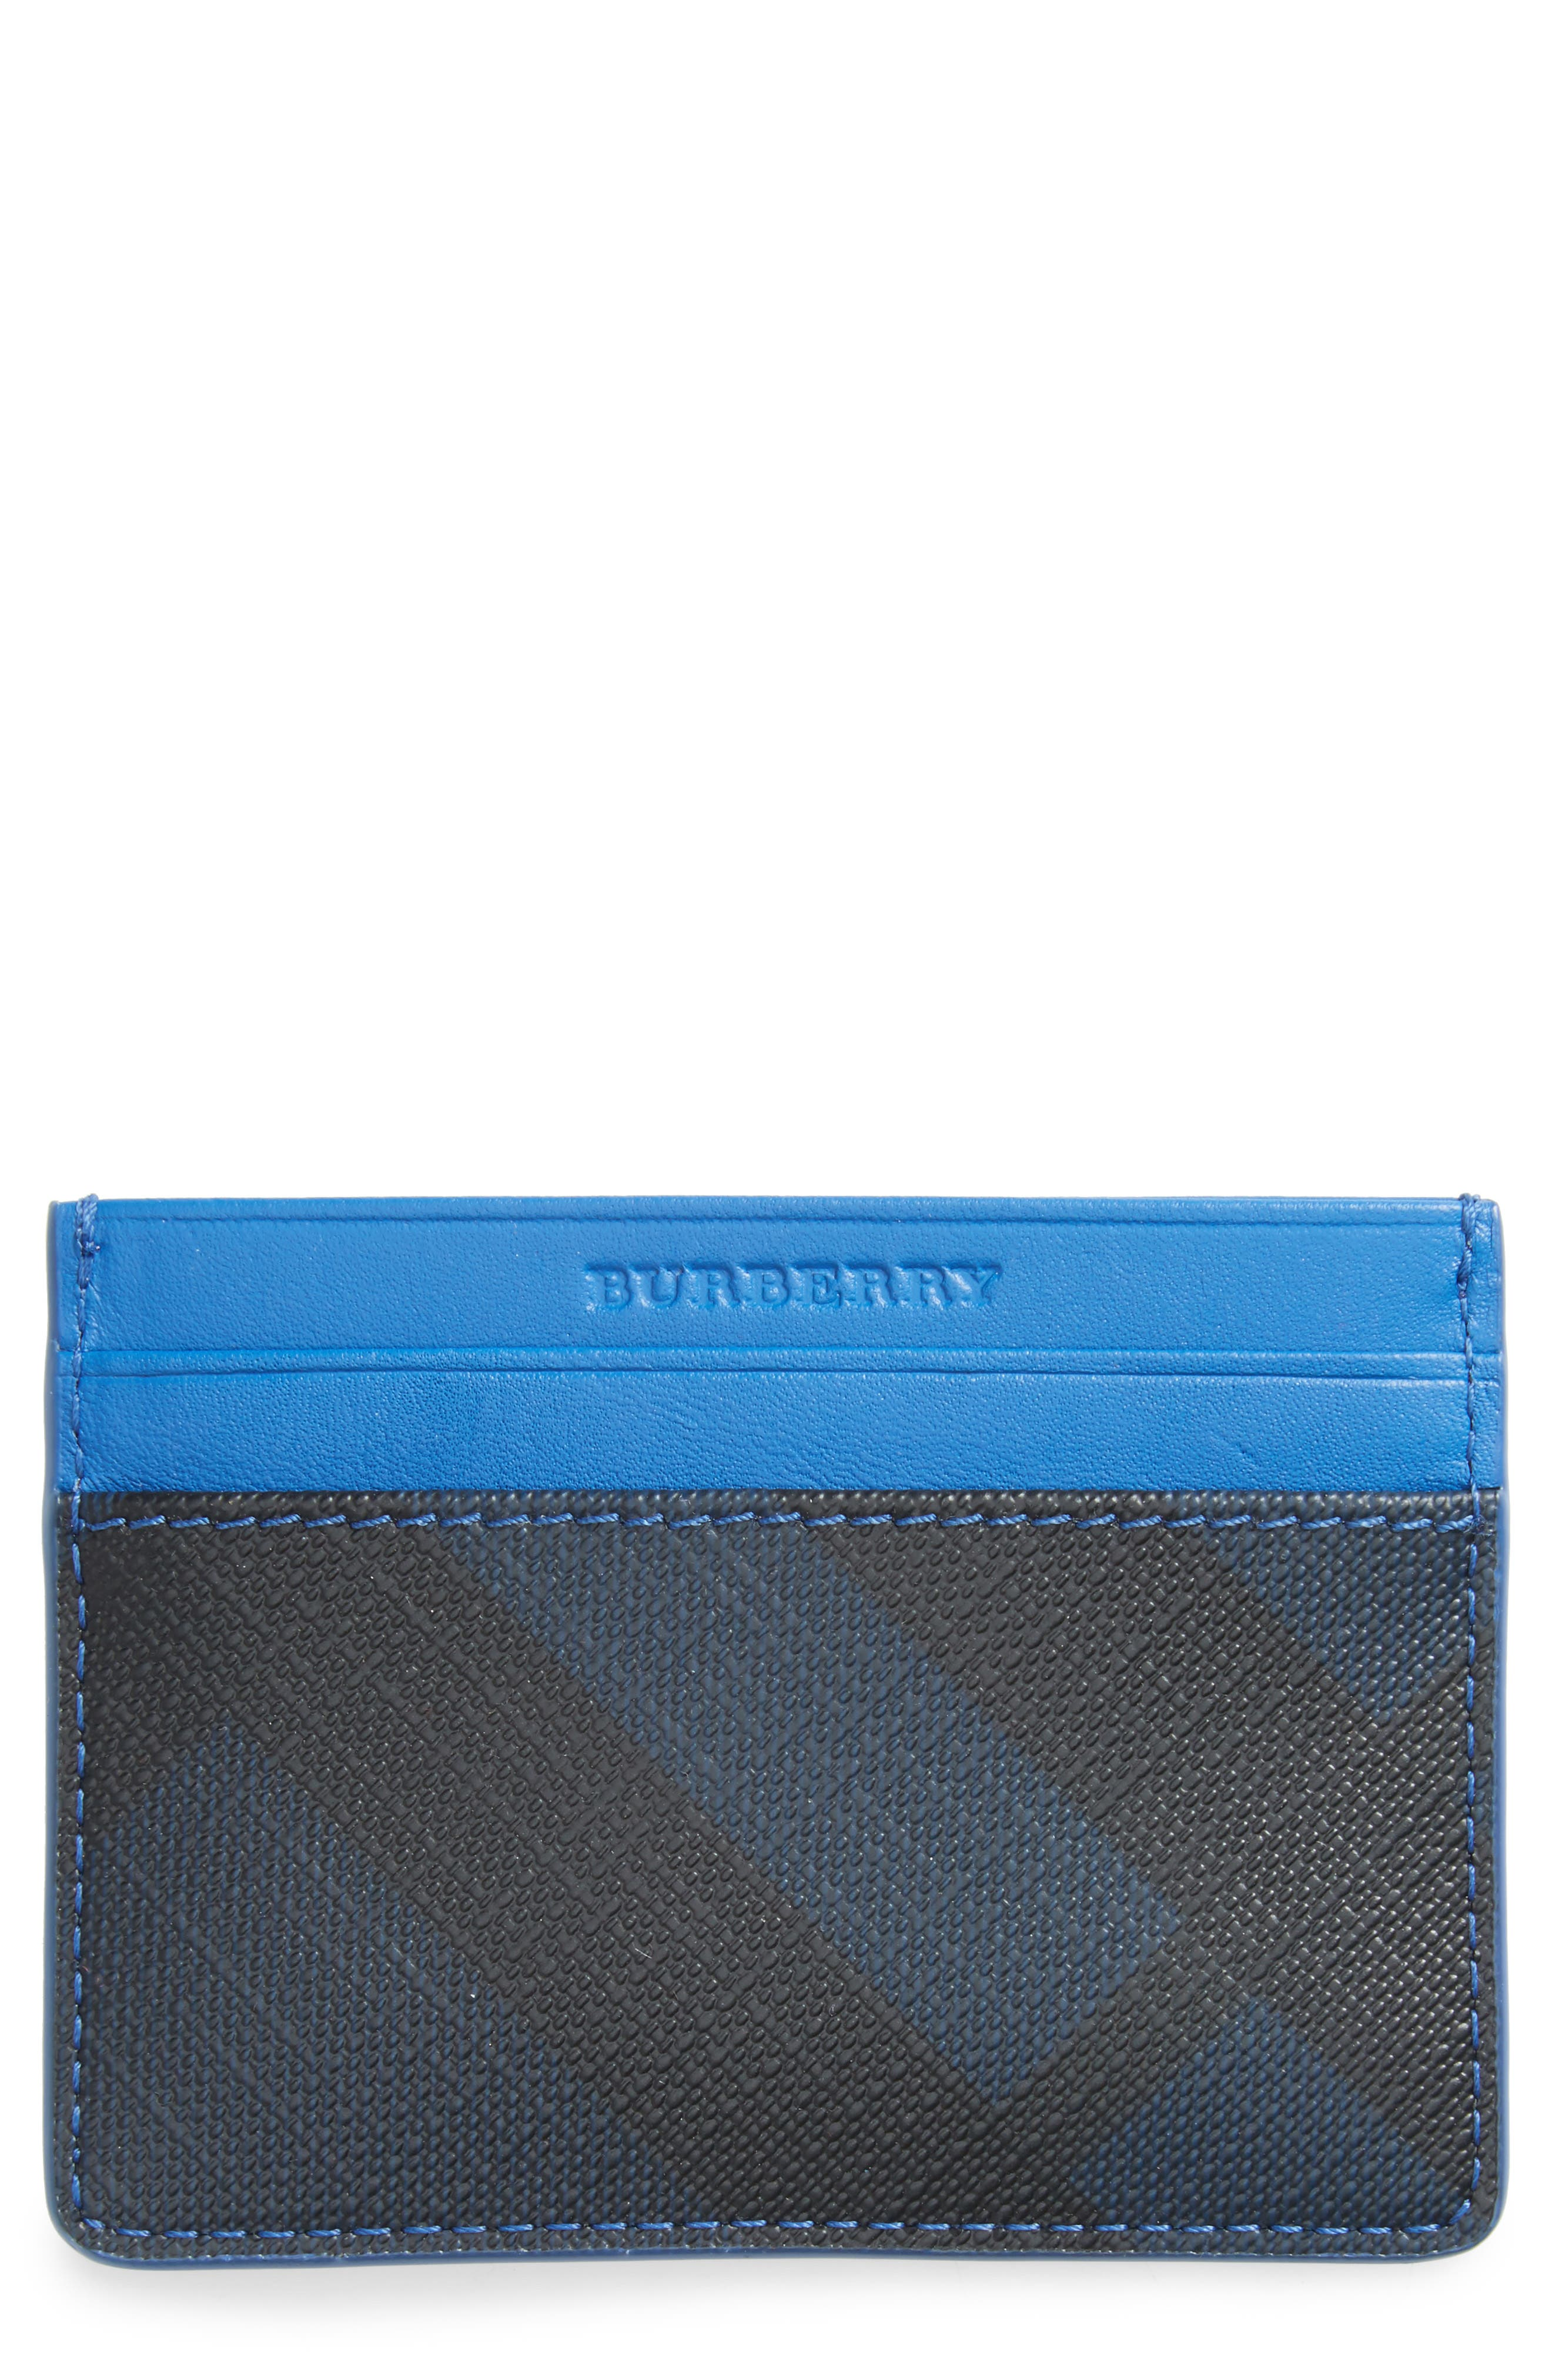 Check Faux Leather Card Case,                             Main thumbnail 1, color,                             Navy/ Blue